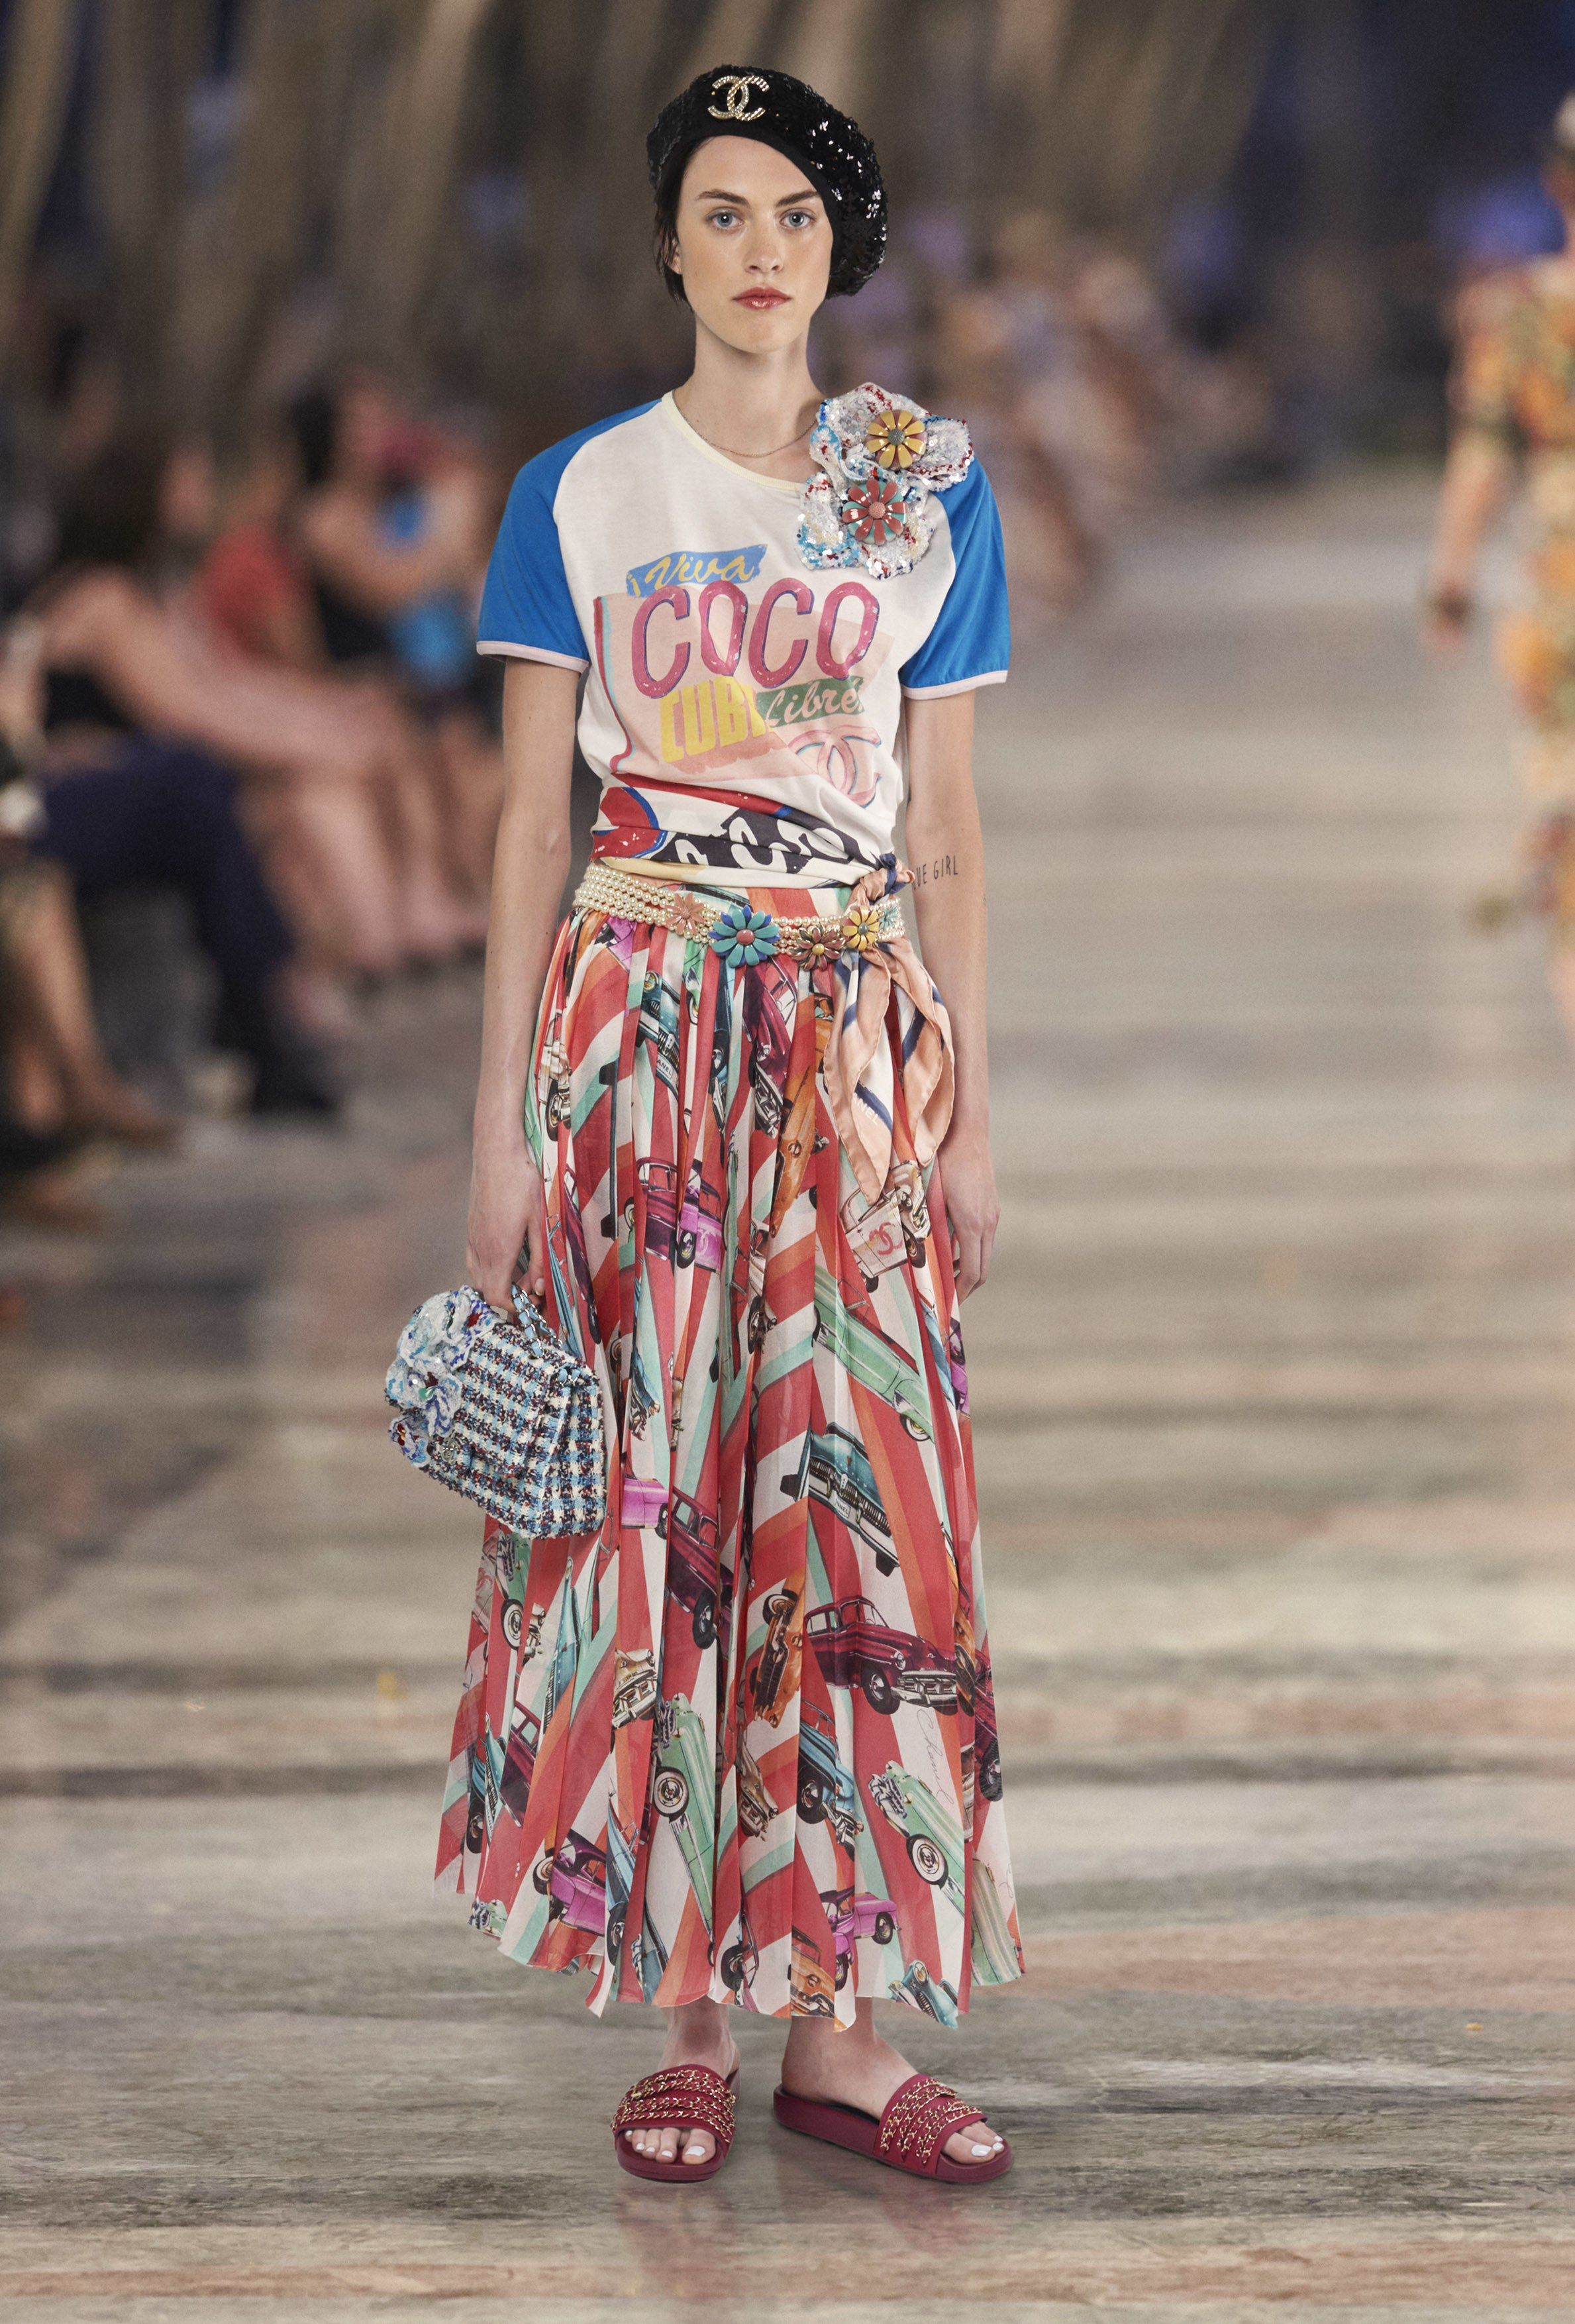 Chanel Resort 2017 Undefined Photos | Chanel resort, Resorts and ...